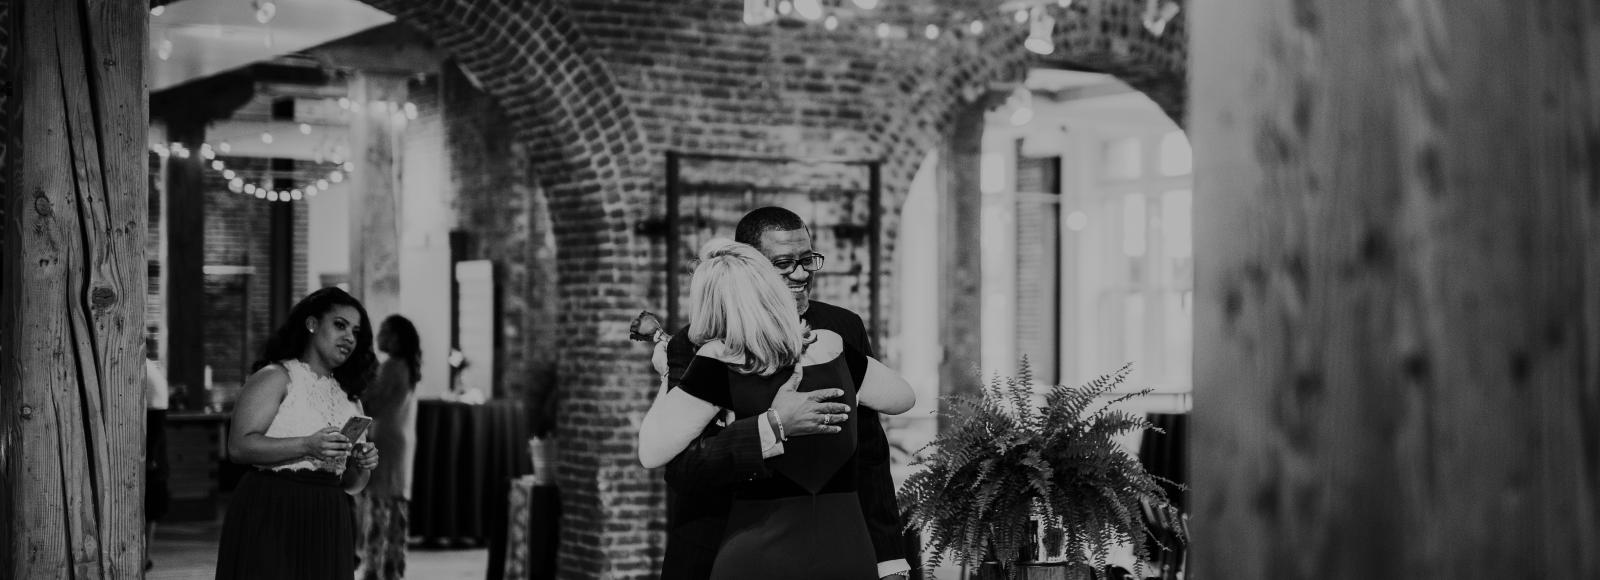 Black and white of two people hugging